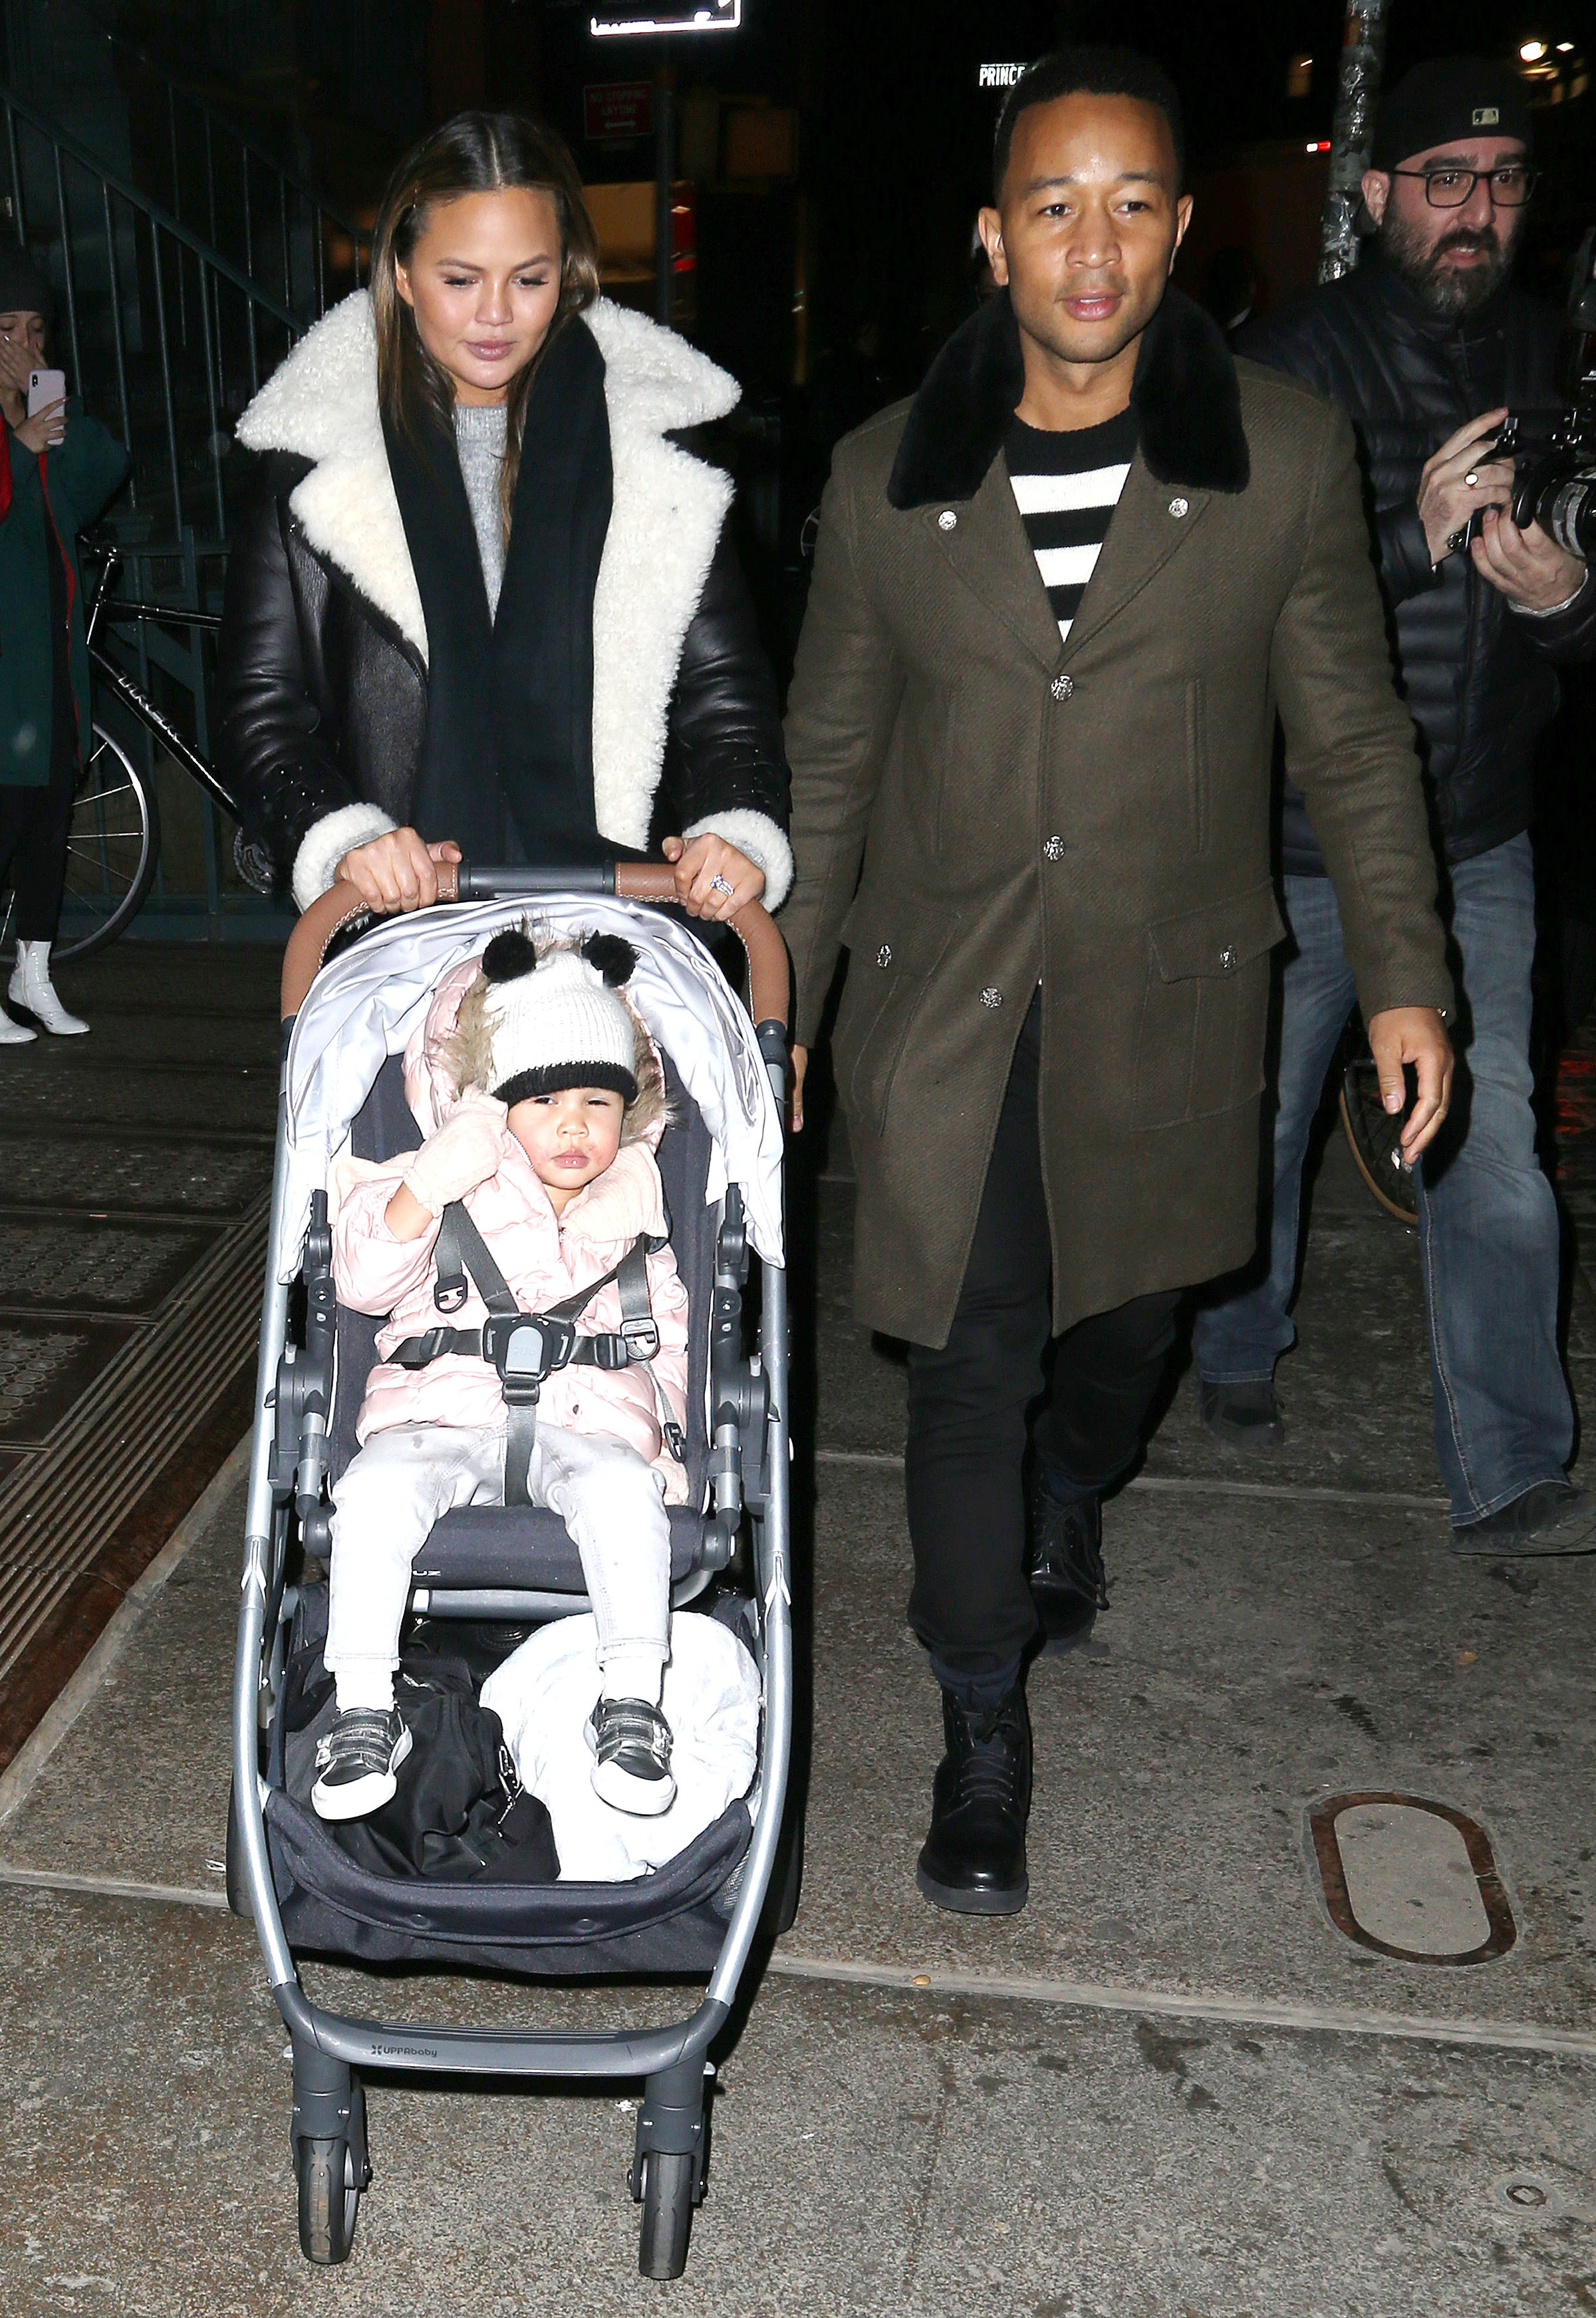 Chrissy Teigen and John Legend step out with their daughter, Luna Stephens, in New York City on Jan. 29, 2018.